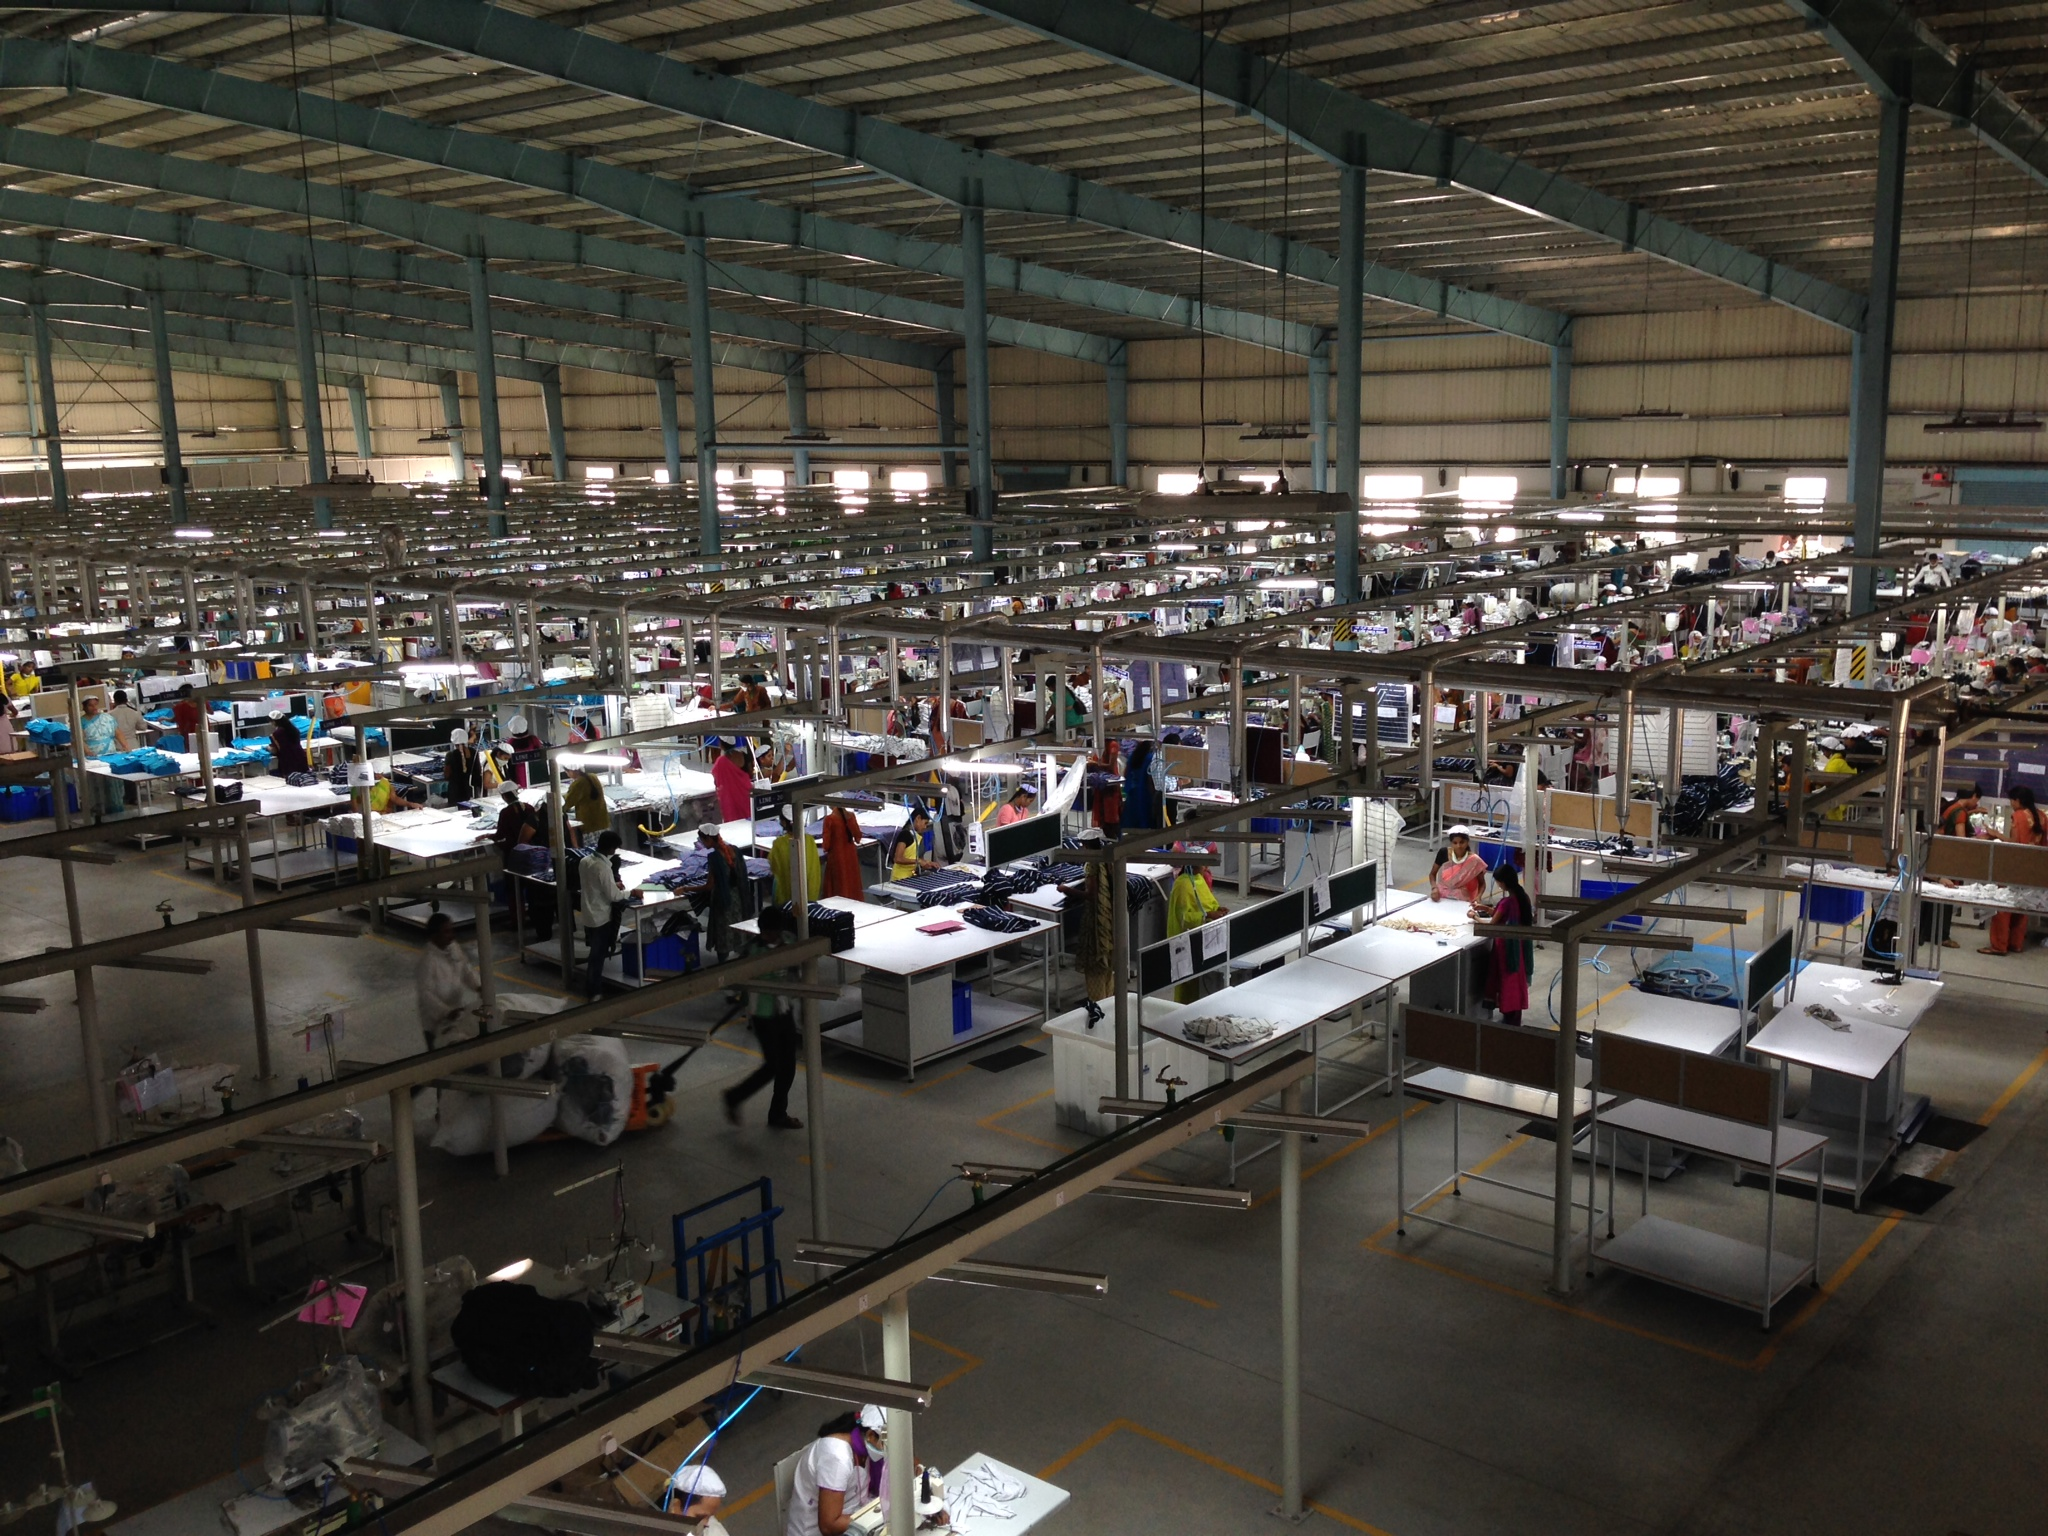 Garment factory in Bangalore, India with fluorescent lighting. Image credit: Achyuta Adhvaryu